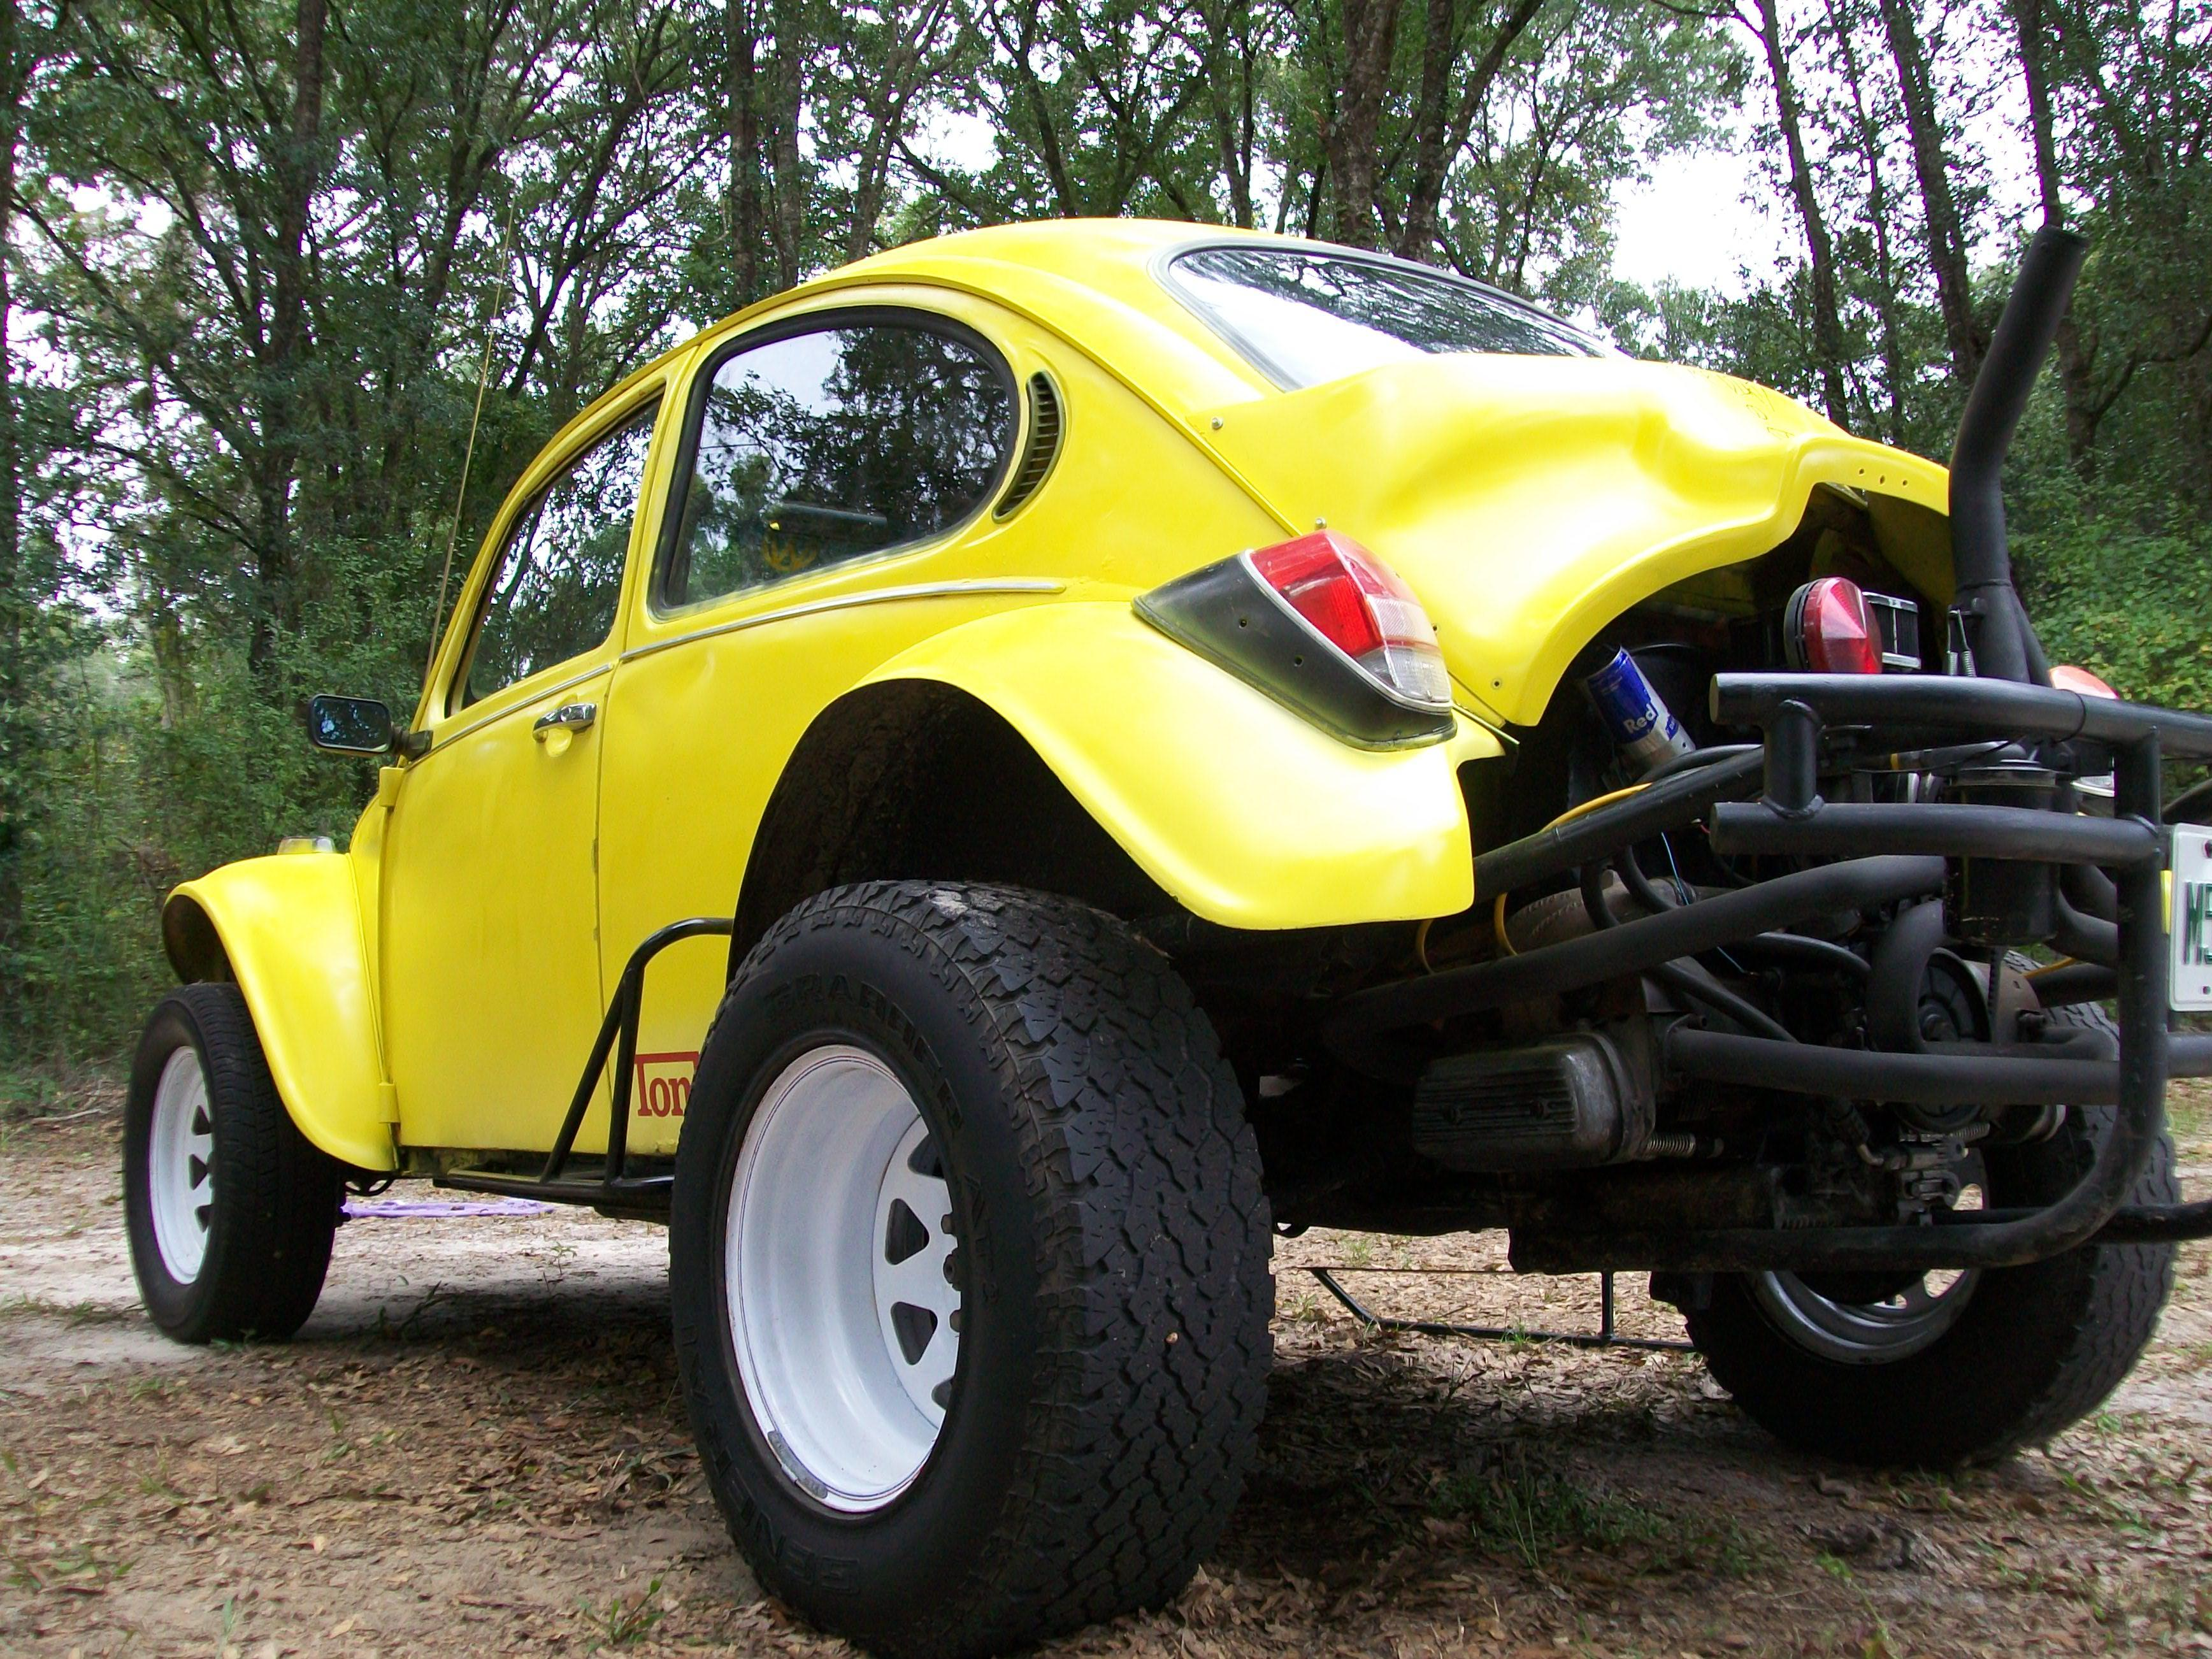 tucanjosh 1974 Volkswagen Beetle Specs, Photos, Modification